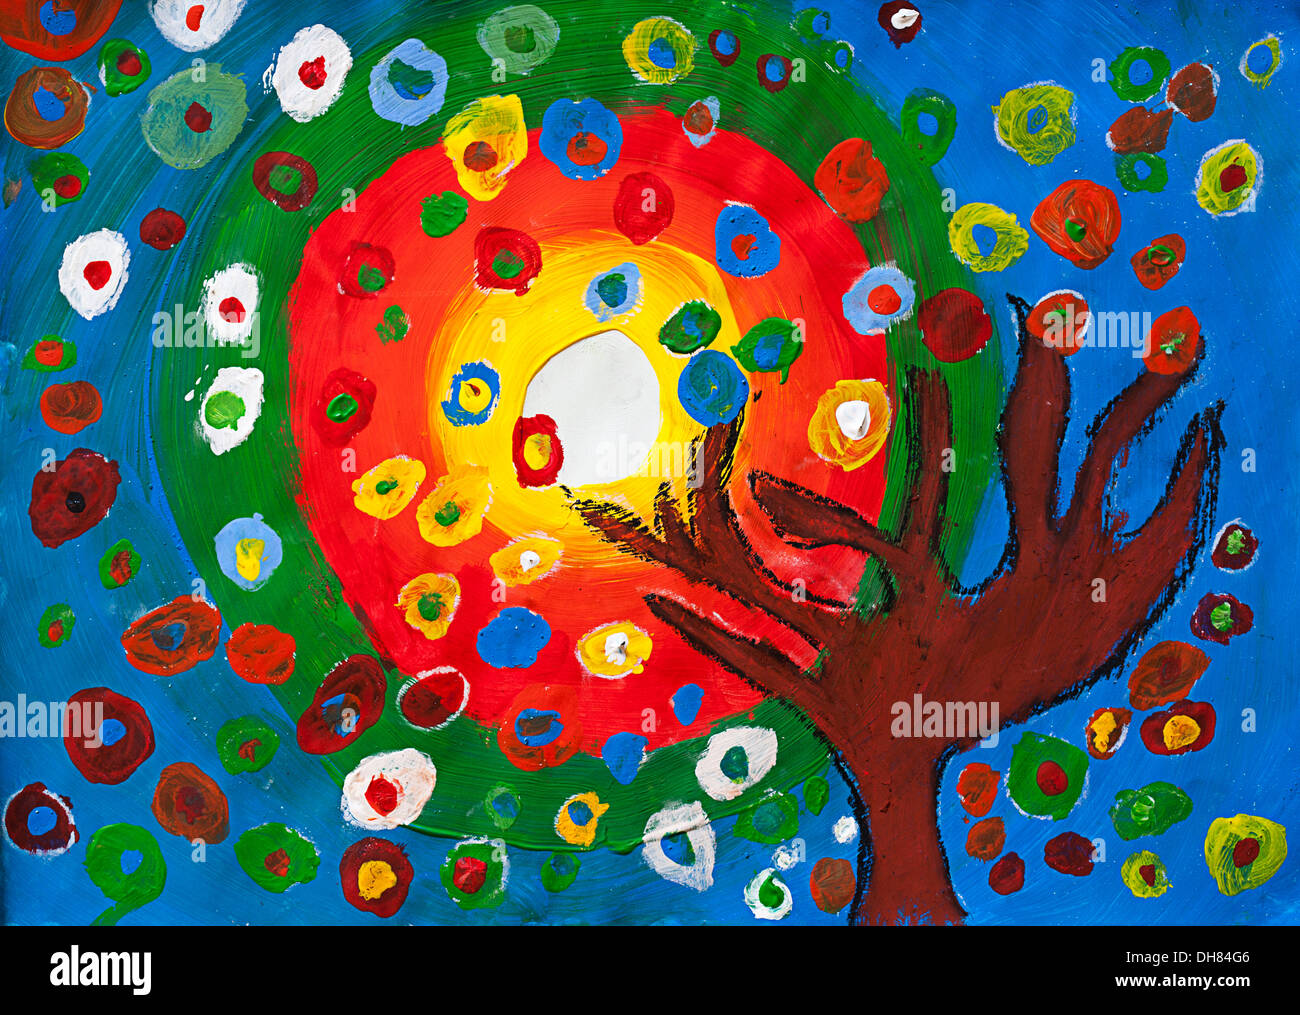 Childrens' artwork: tree and sun - Stock Image